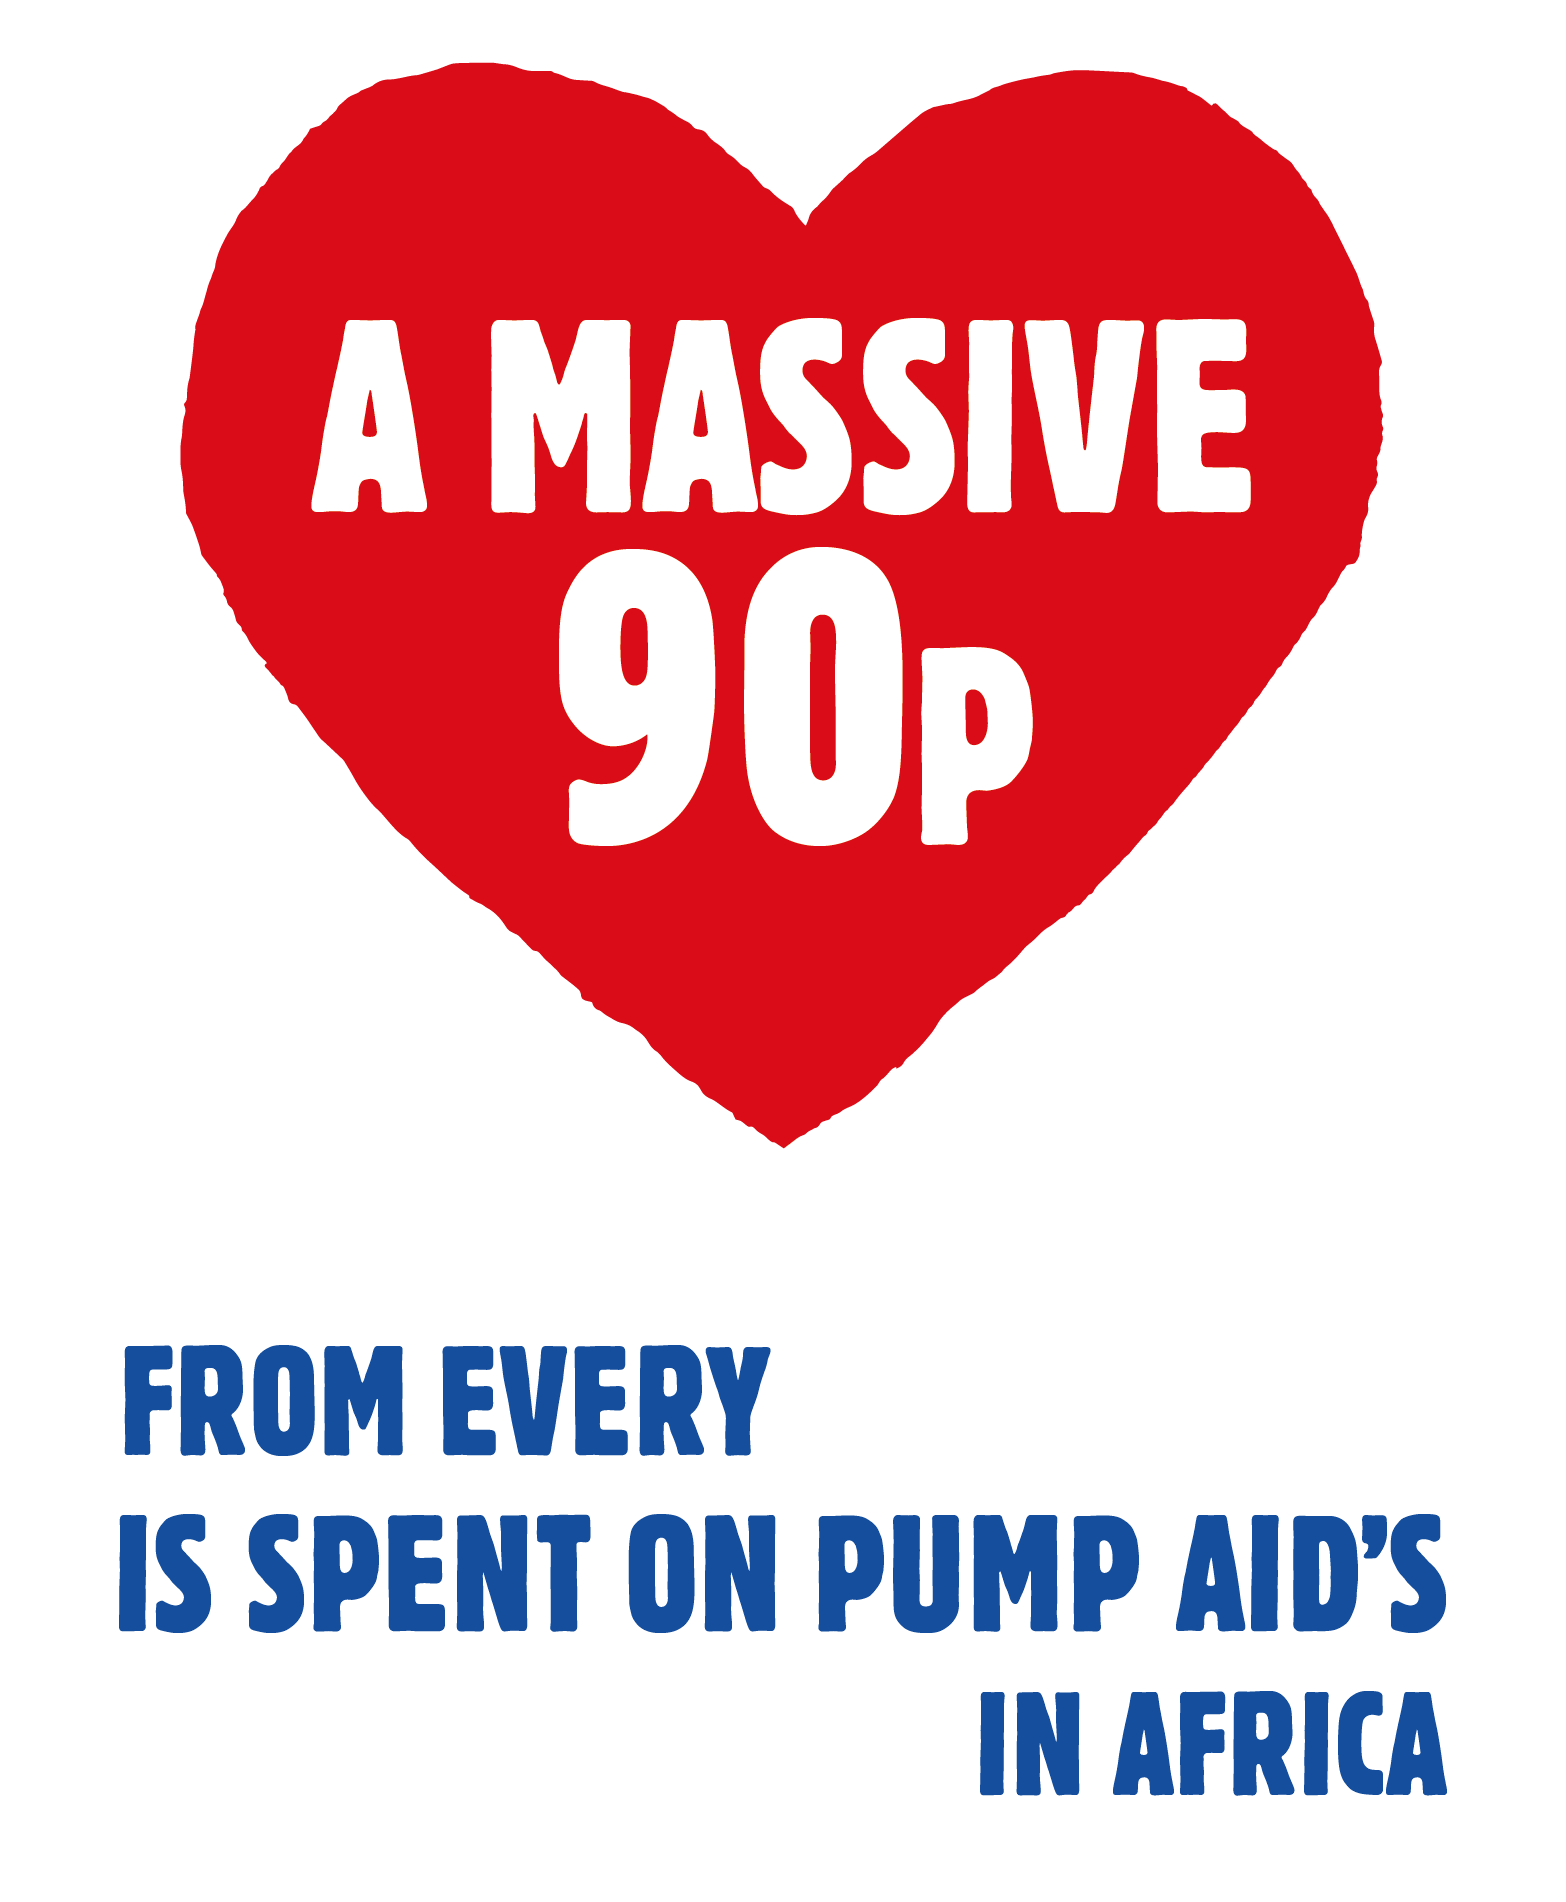 A massive 90p from every £1 donated is spent on Pump Aid's direct delivery in Africa